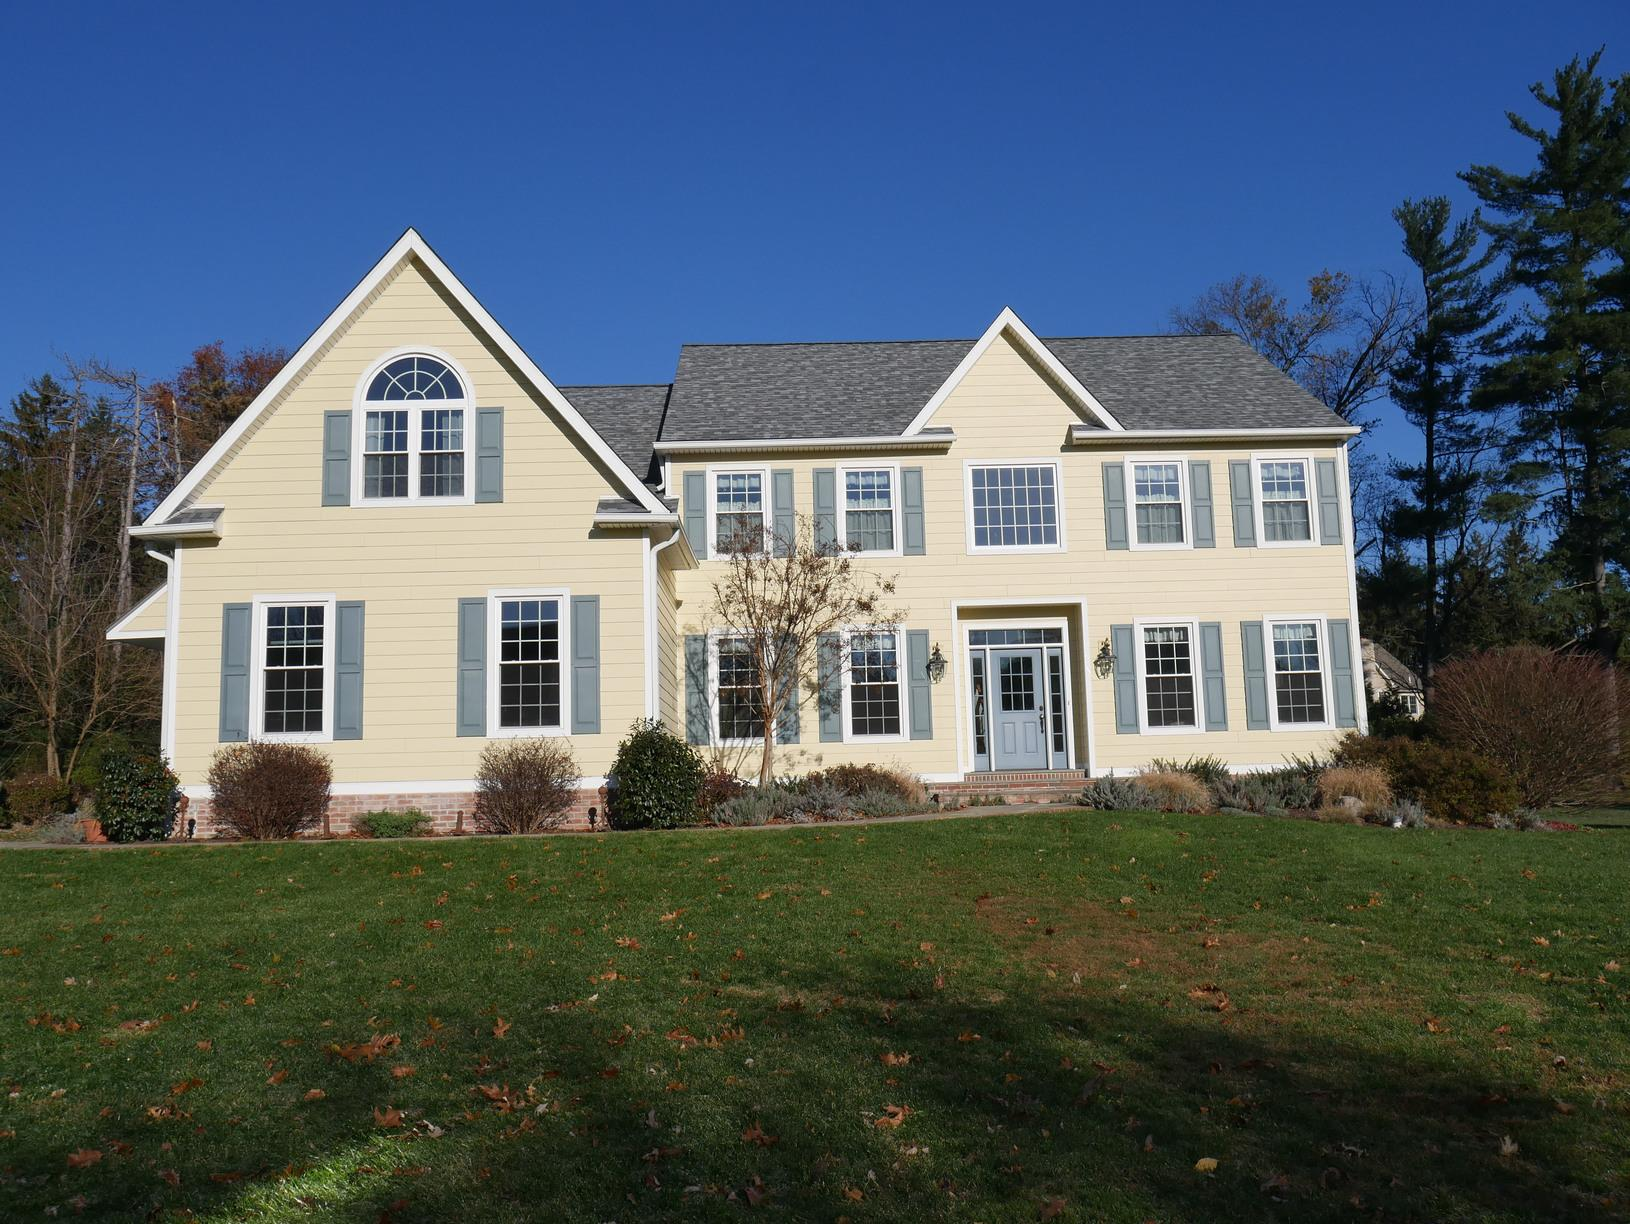 Final Photo of Siding, Windows, and Roof Replacement in PA